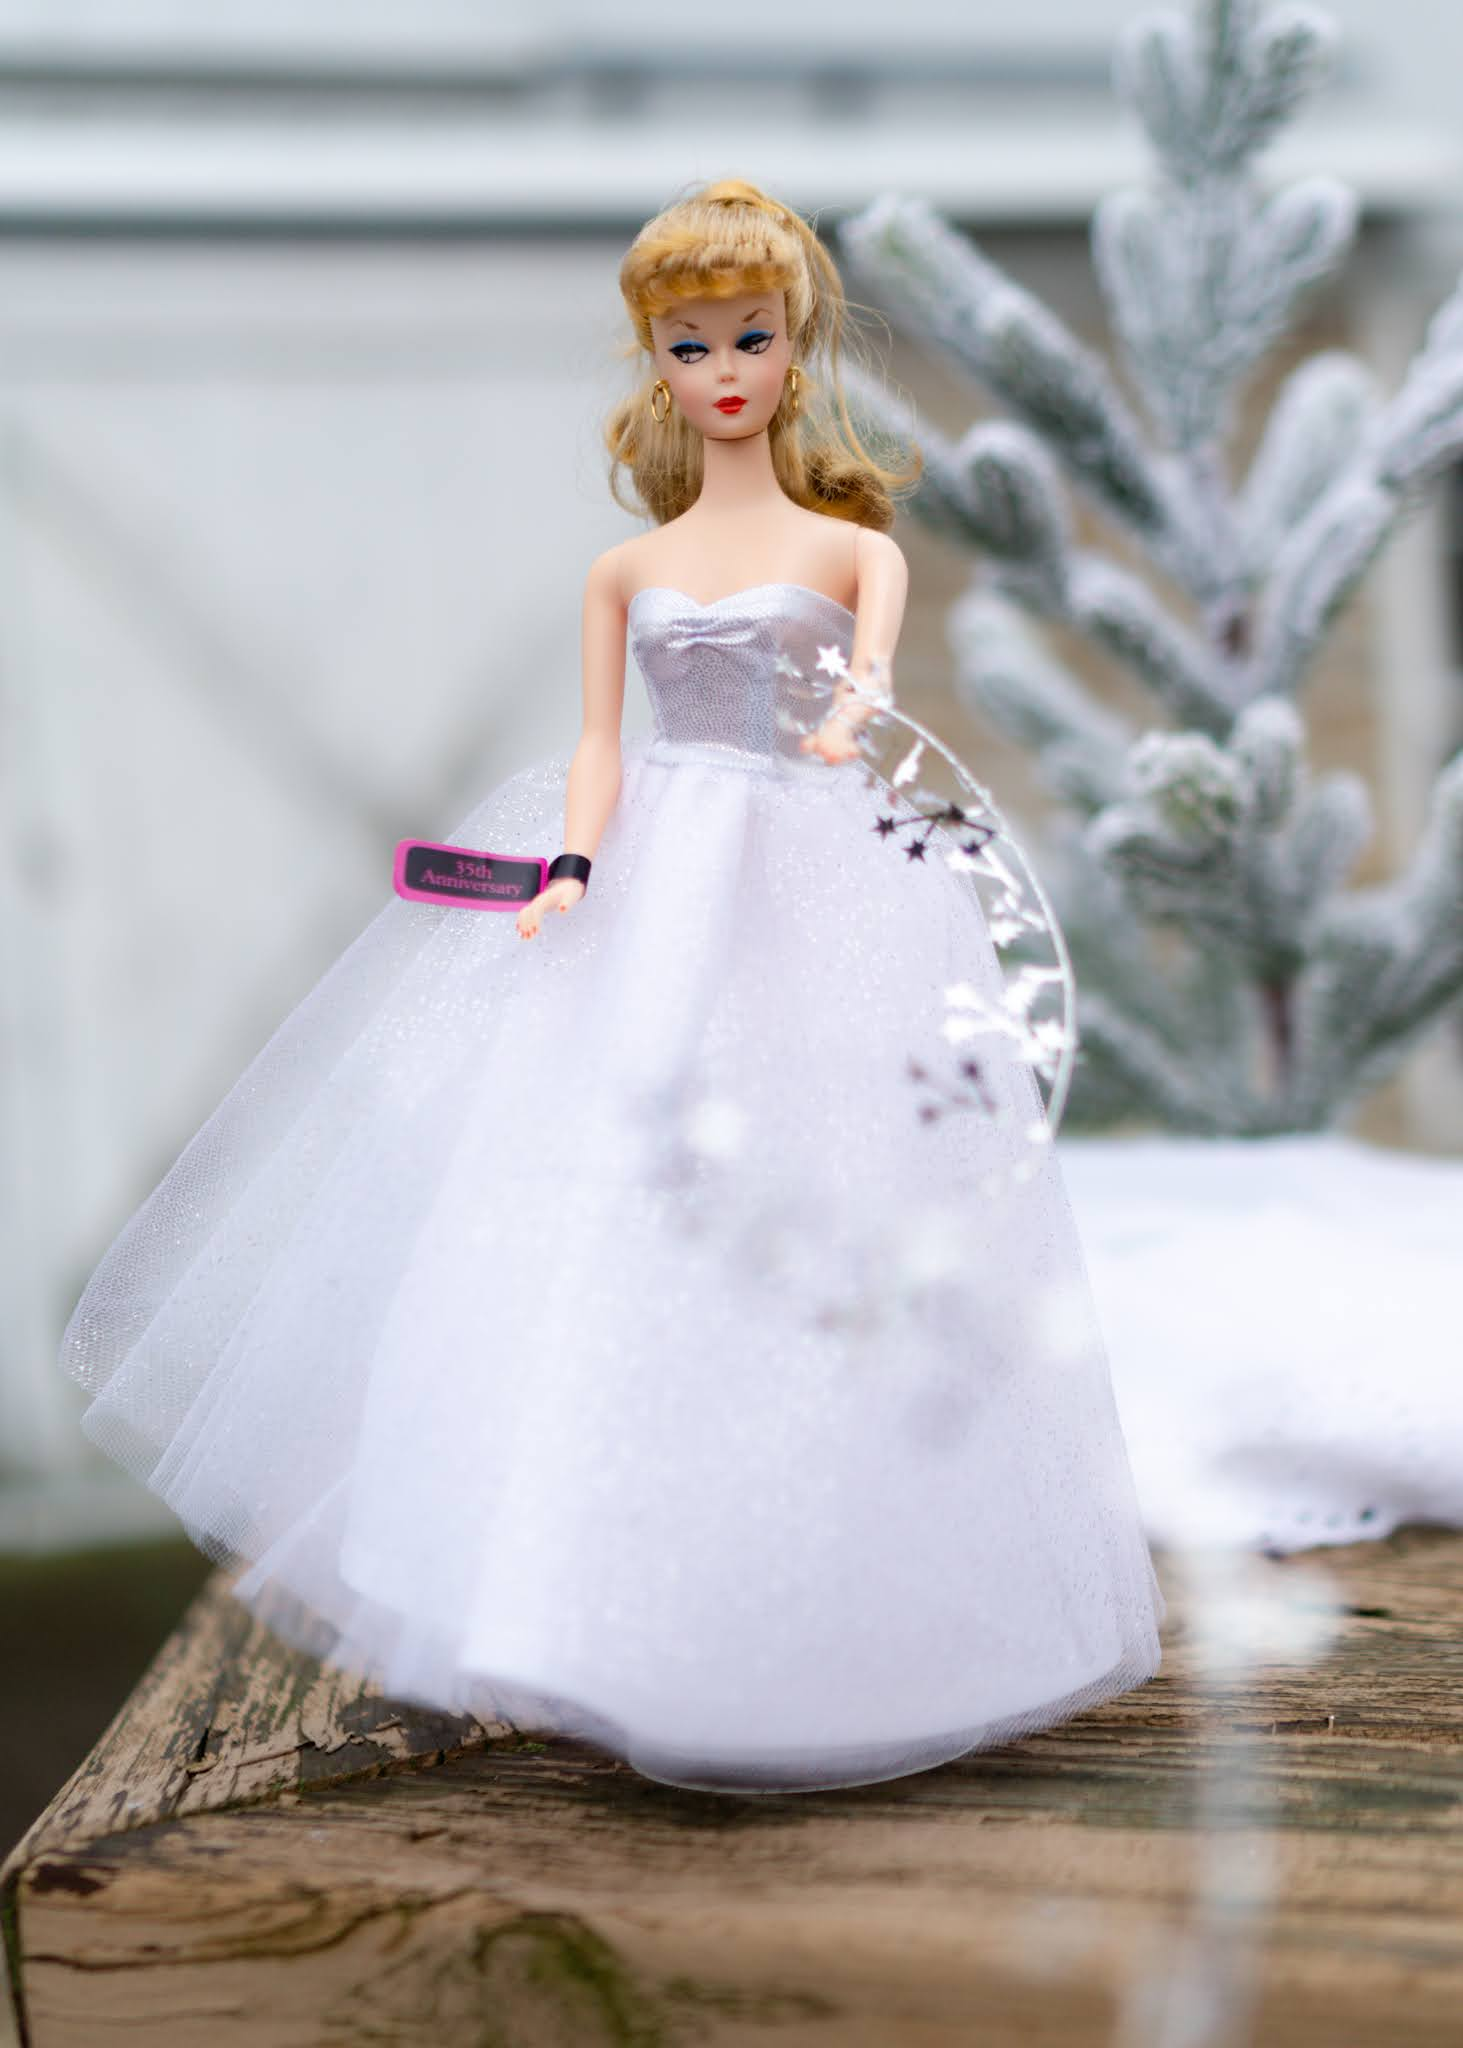 Here is 2020's Holiday Barbie.